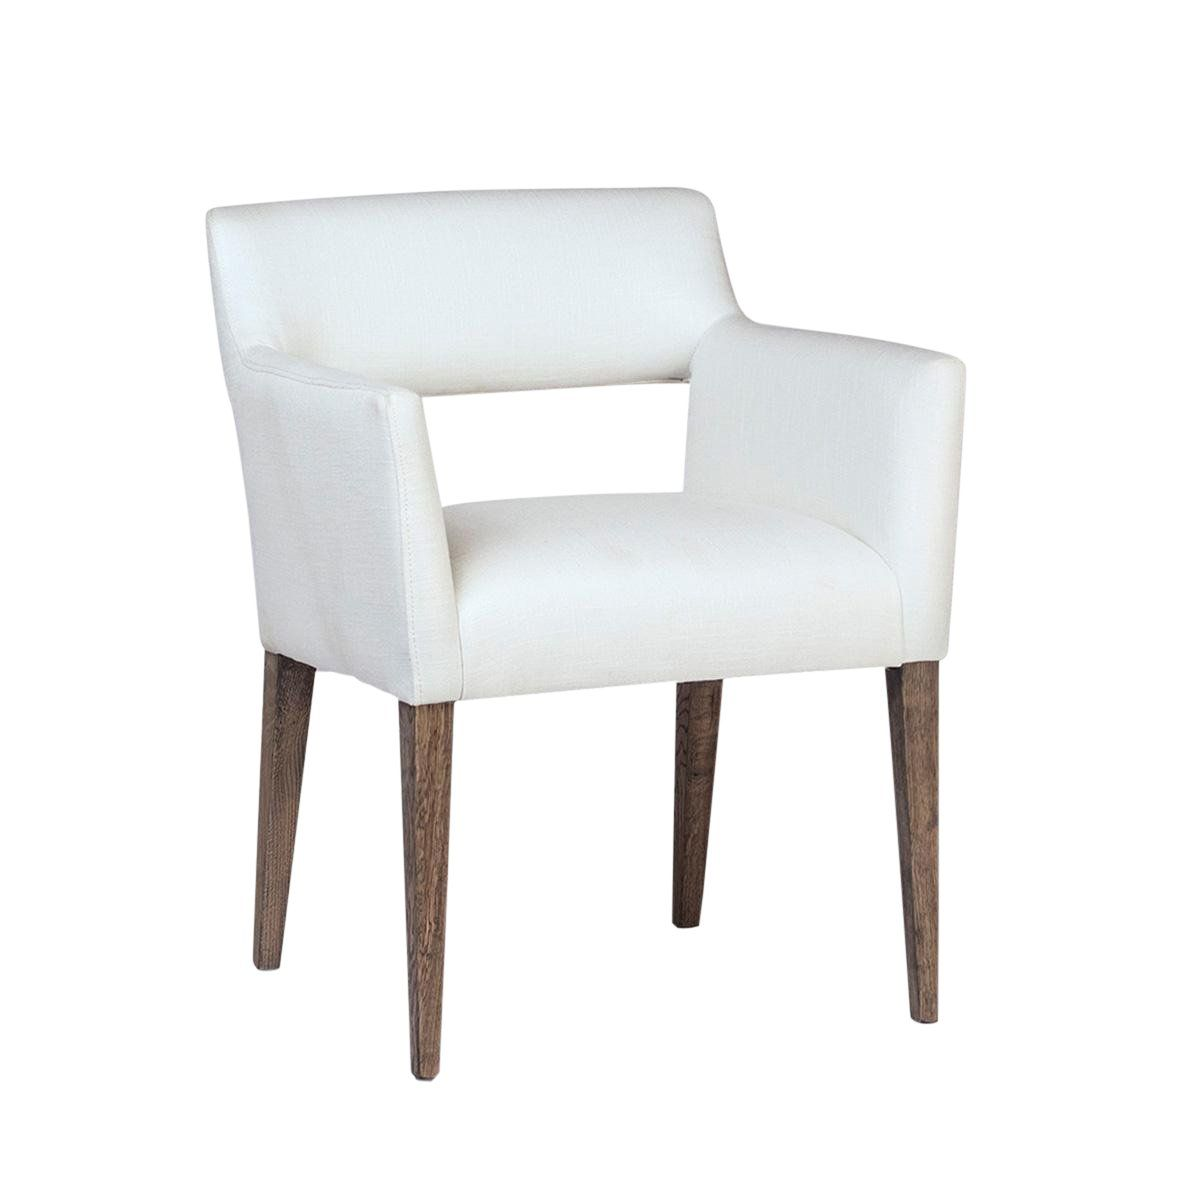 177 99 Losey Solid Wood Dining Chair Dining Chairs Chair Solid Wood Dining Chairs